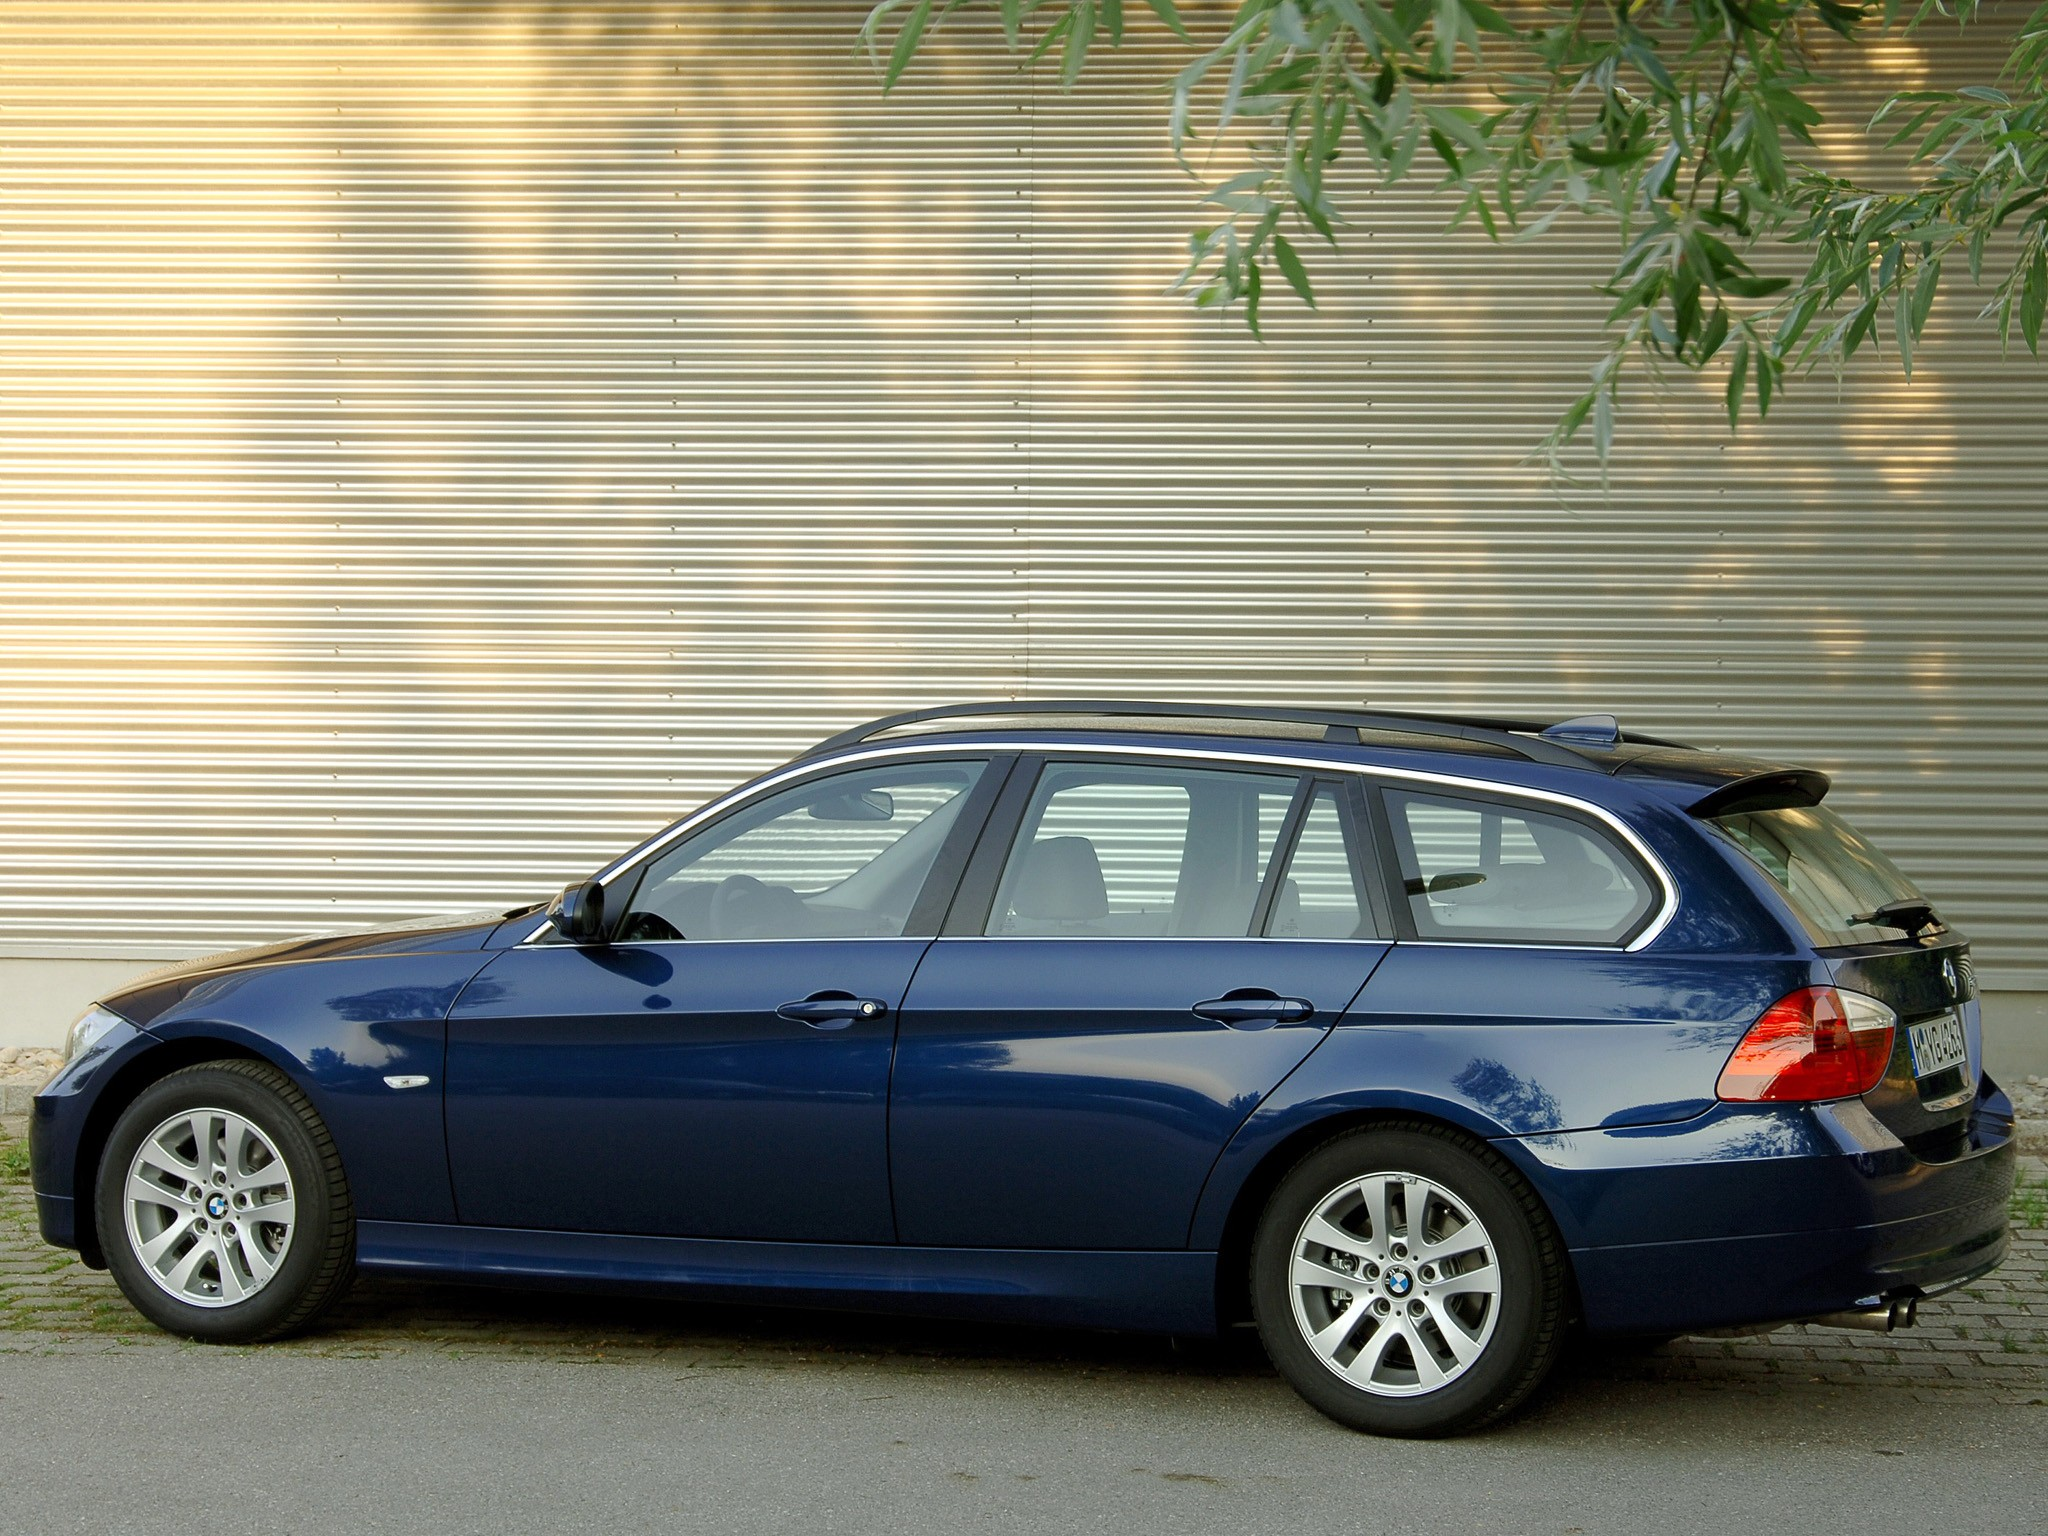 2006 Bmw 325xi >> BMW 3 Series Touring (E91) specs & photos - 2005, 2006, 2007, 2008 - autoevolution